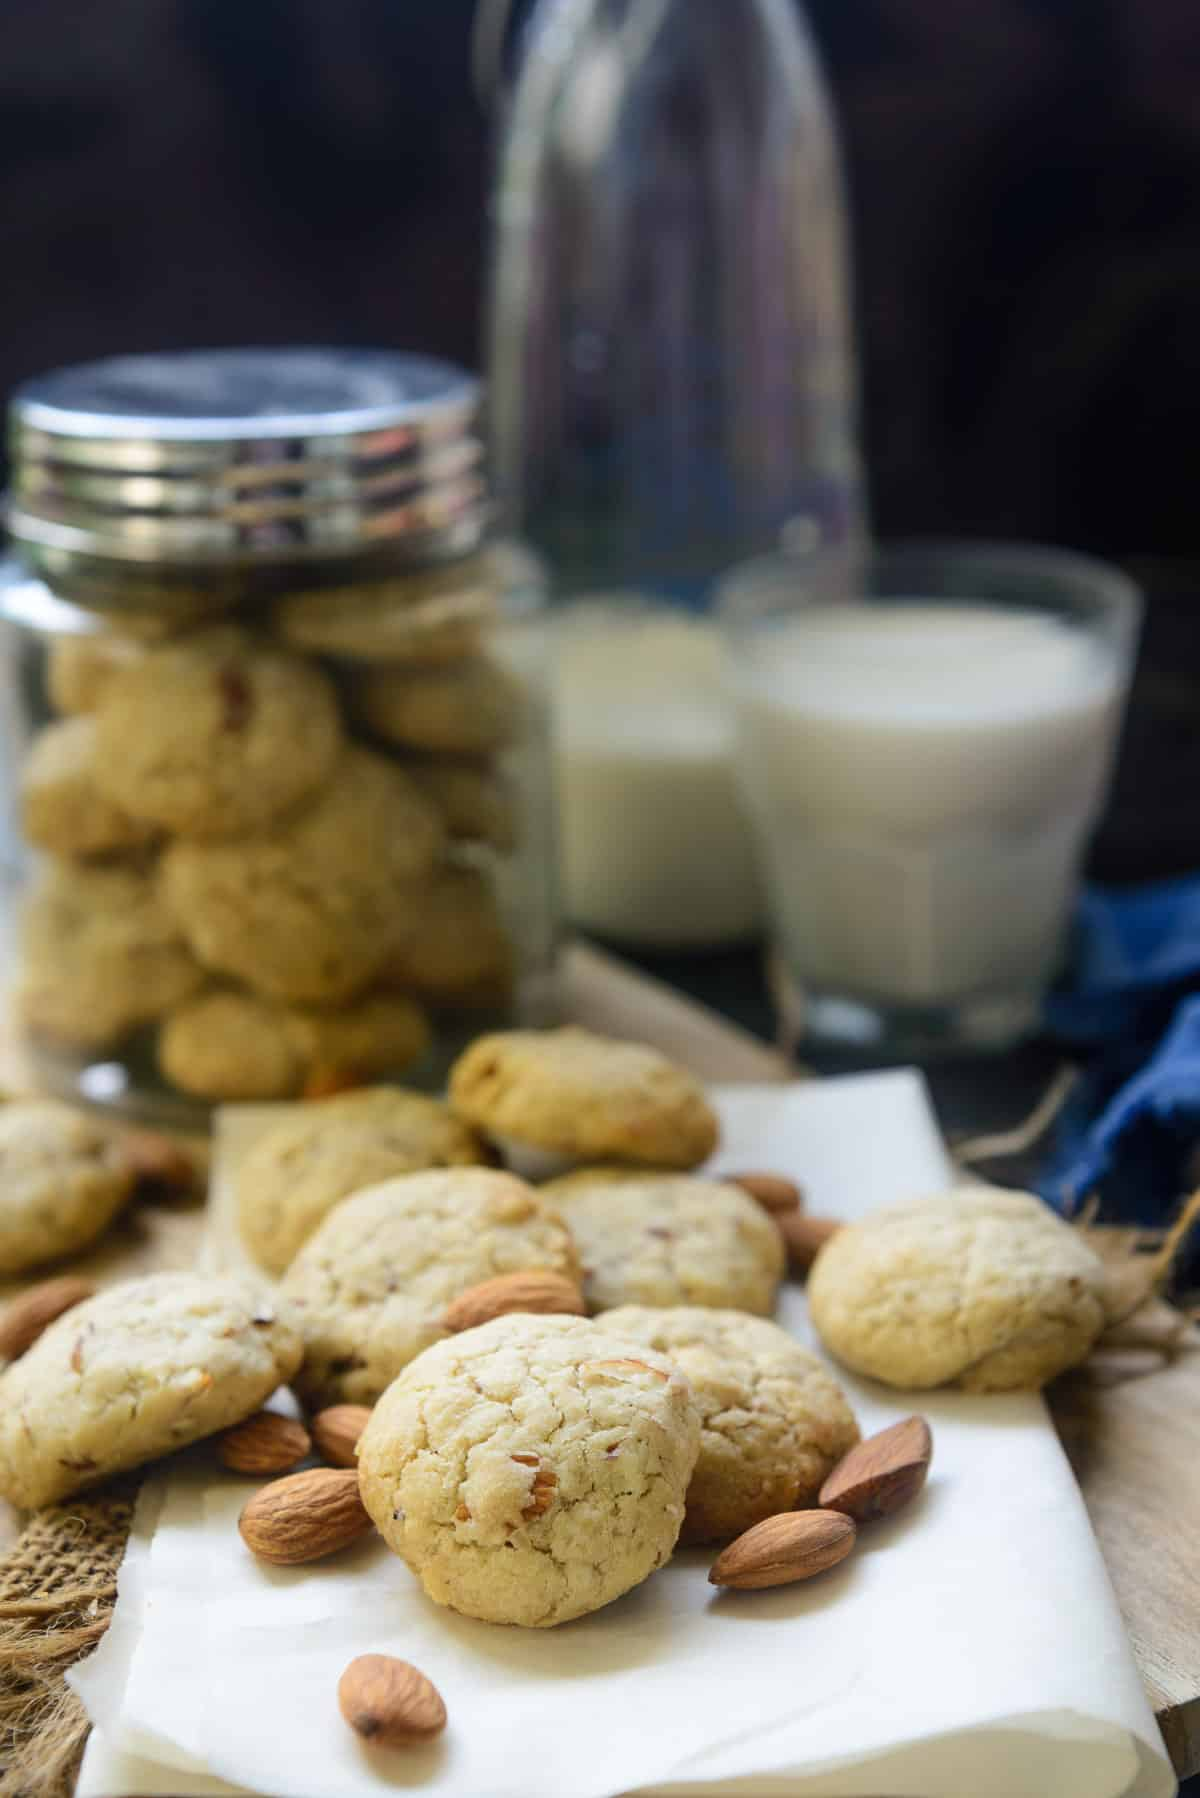 Almond Cookies scattered on a table.